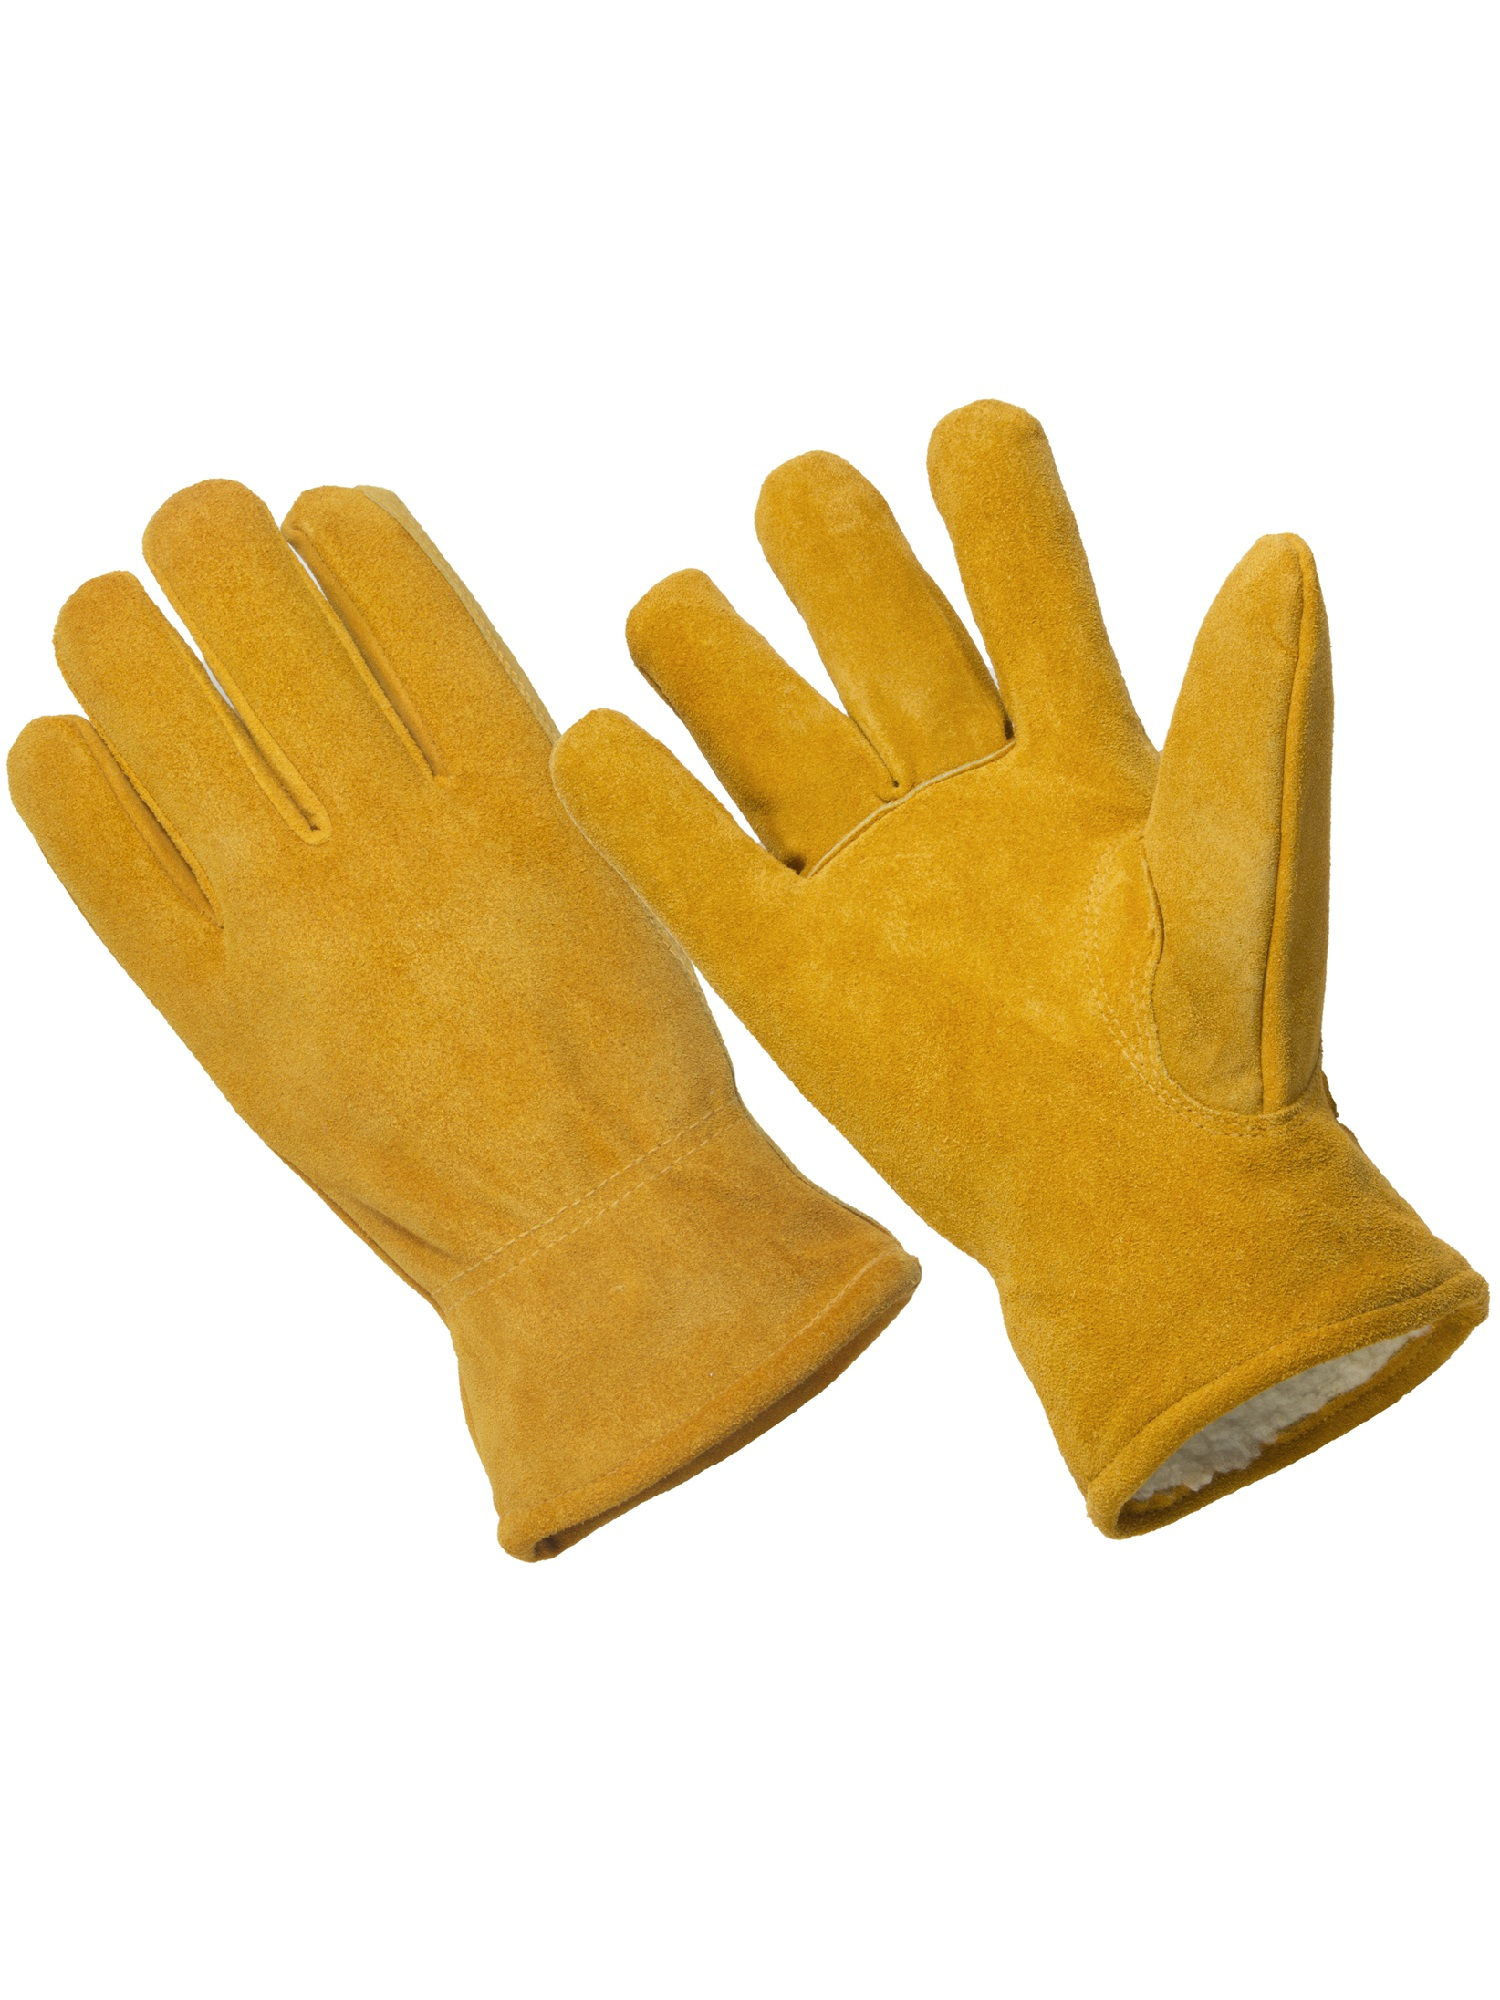 LD4005-M, Premium Cow Suede Leather Driver Glove, Sherpa Lined